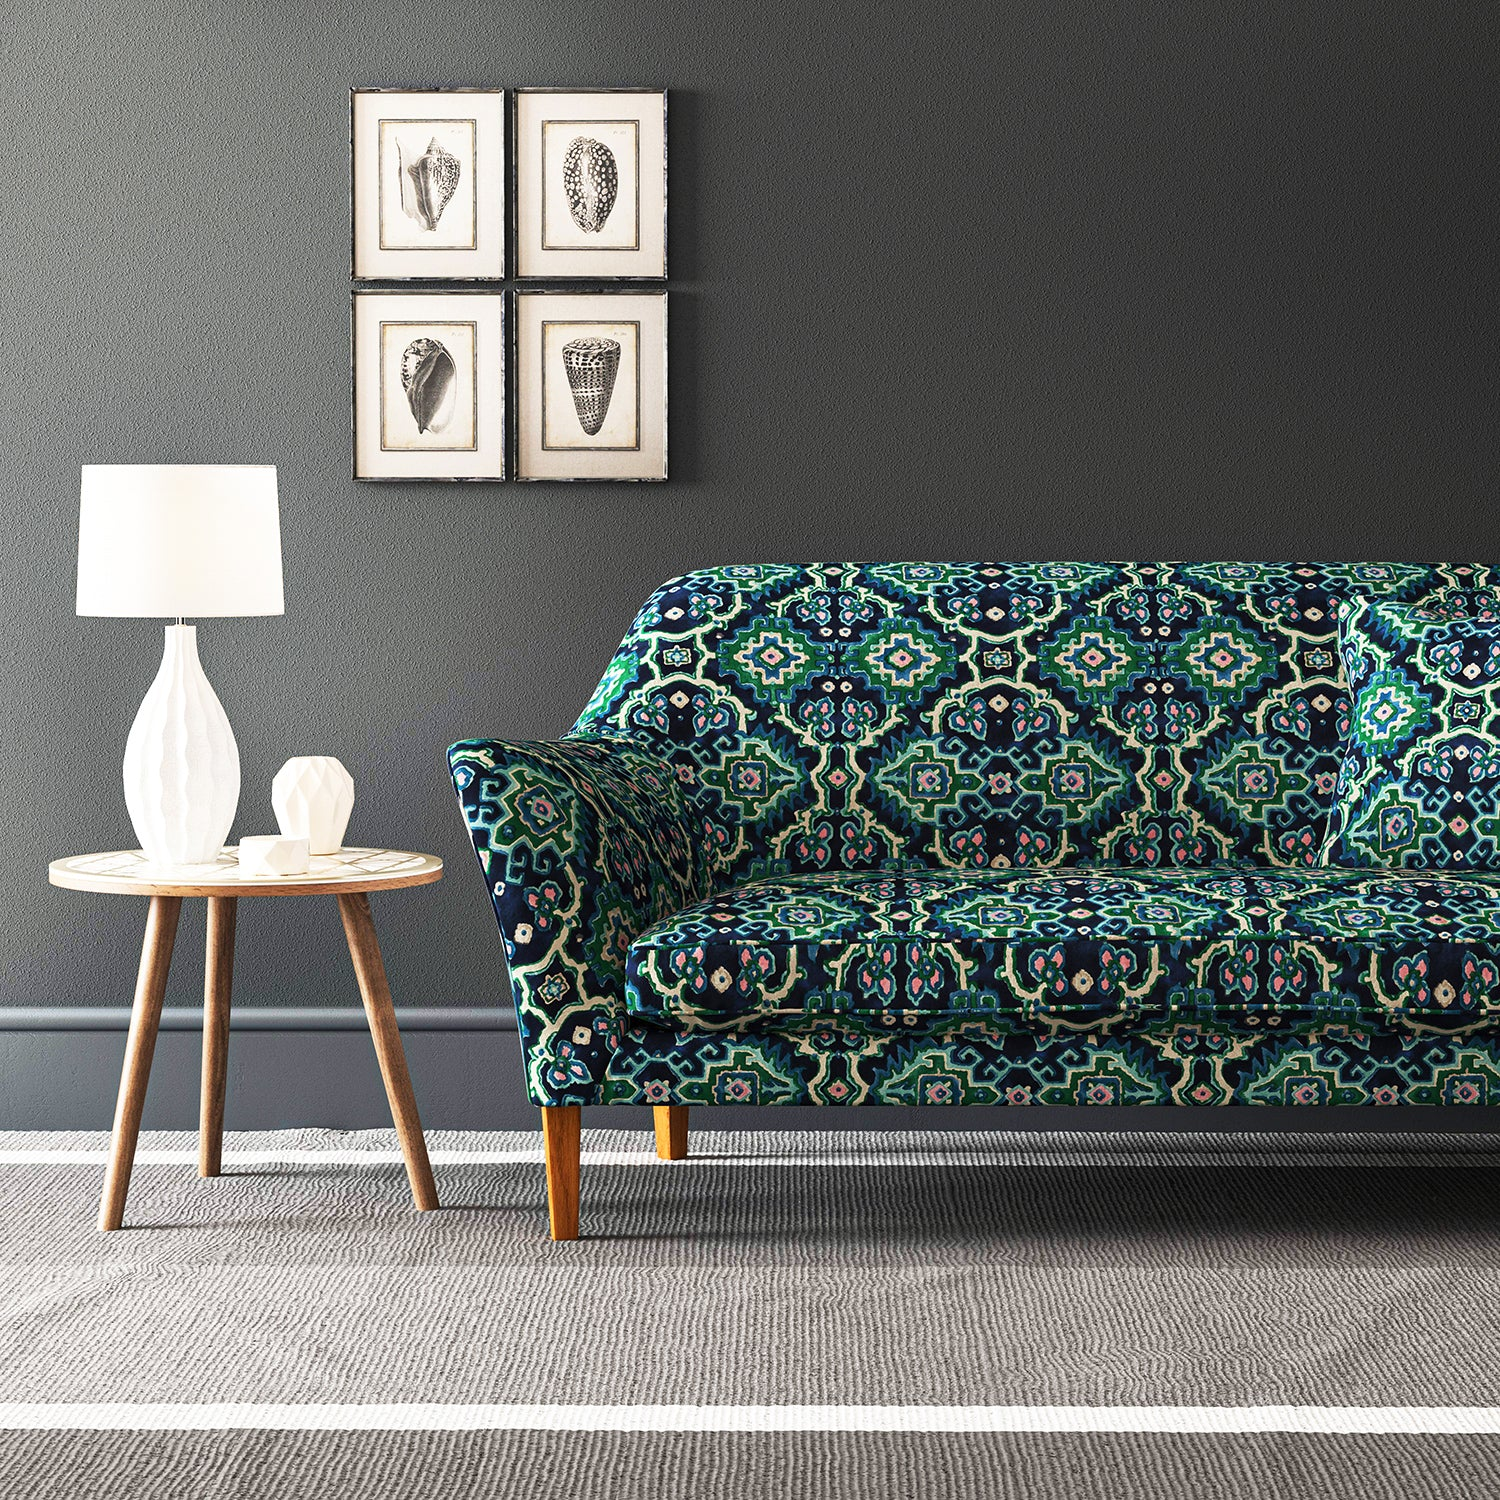 Velvet sofa upholstered in a printed velvet fabric with an oriental geometric design in blue and green colours